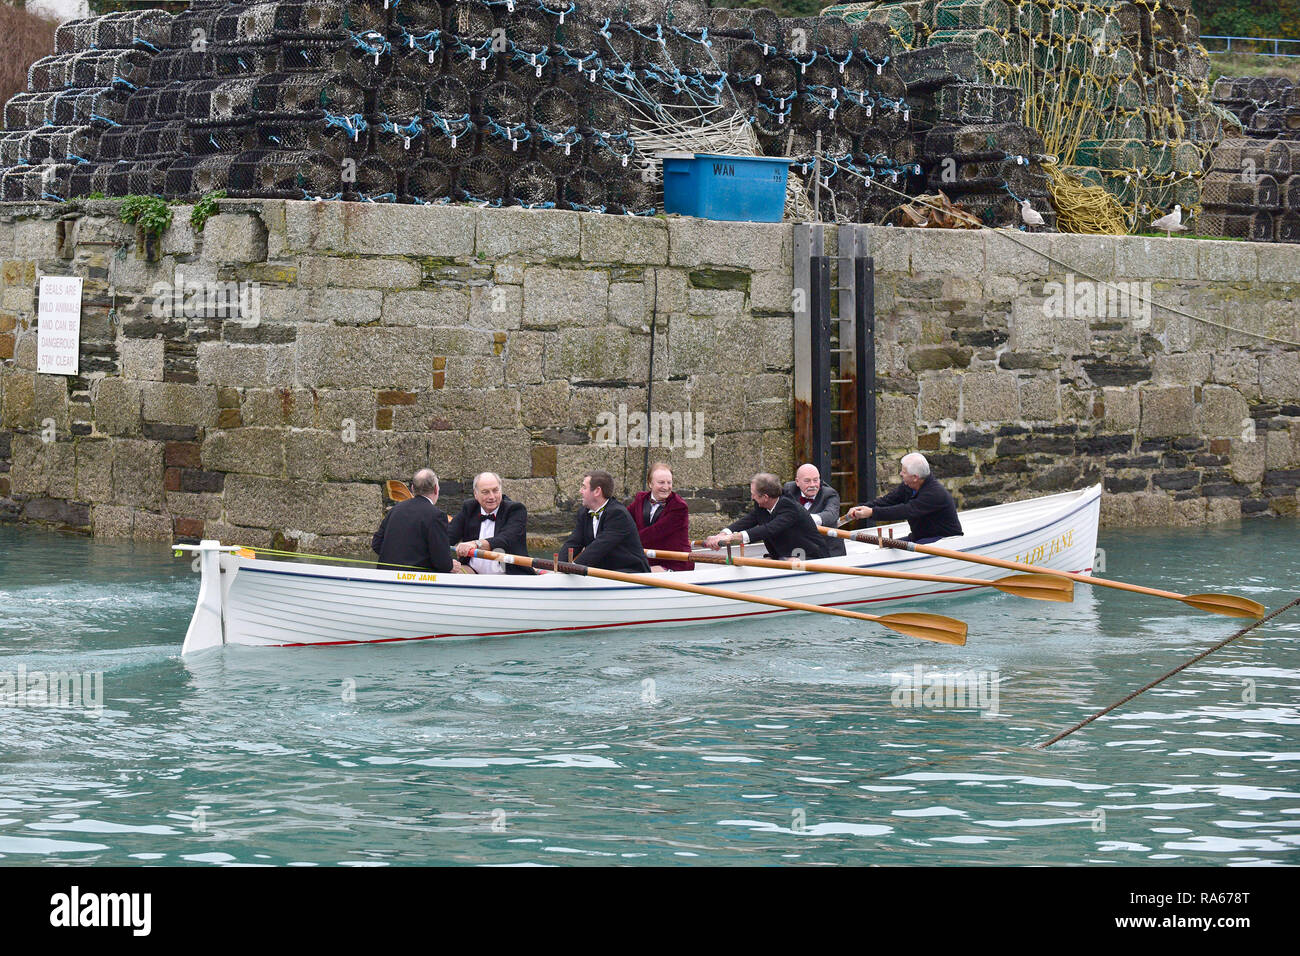 Newquay, Cornwall, UK. 21st April, 2018.  Senior members of Newquay Rowing Club wearing tuxedos set off on their annual 'Port Run'.  A bottle of port is rowed across Newquay Bay to Porth Island by these rowers in a traditional Cornish Pilot Gig.  Once they land the bottle is consumed by the rowers who then return to Newquay Harbour.   Gordon Scammell/Alamy Live News. - Stock Image